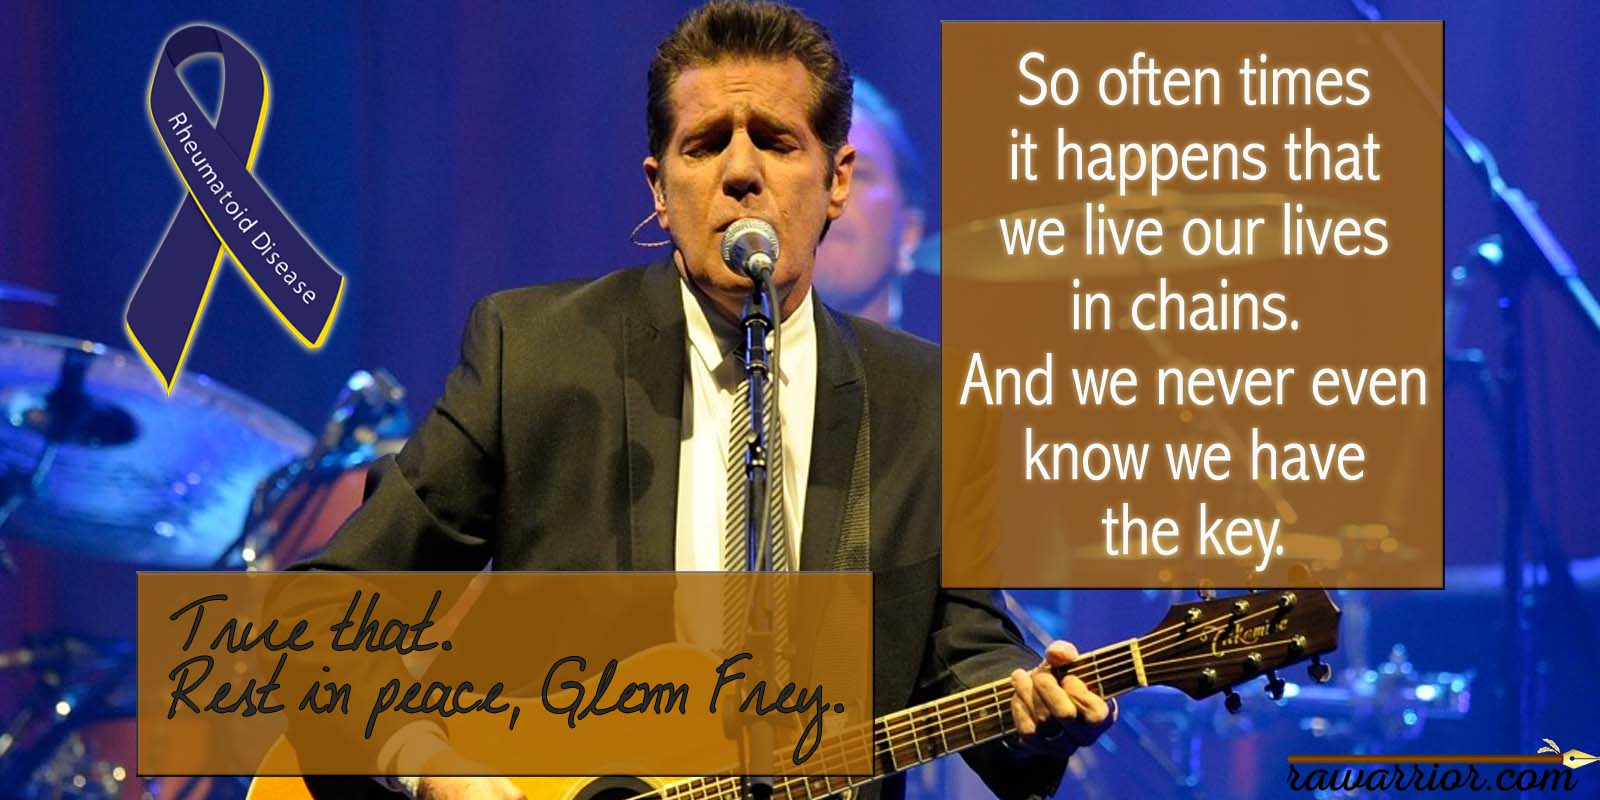 Glenn Frey's cause of death